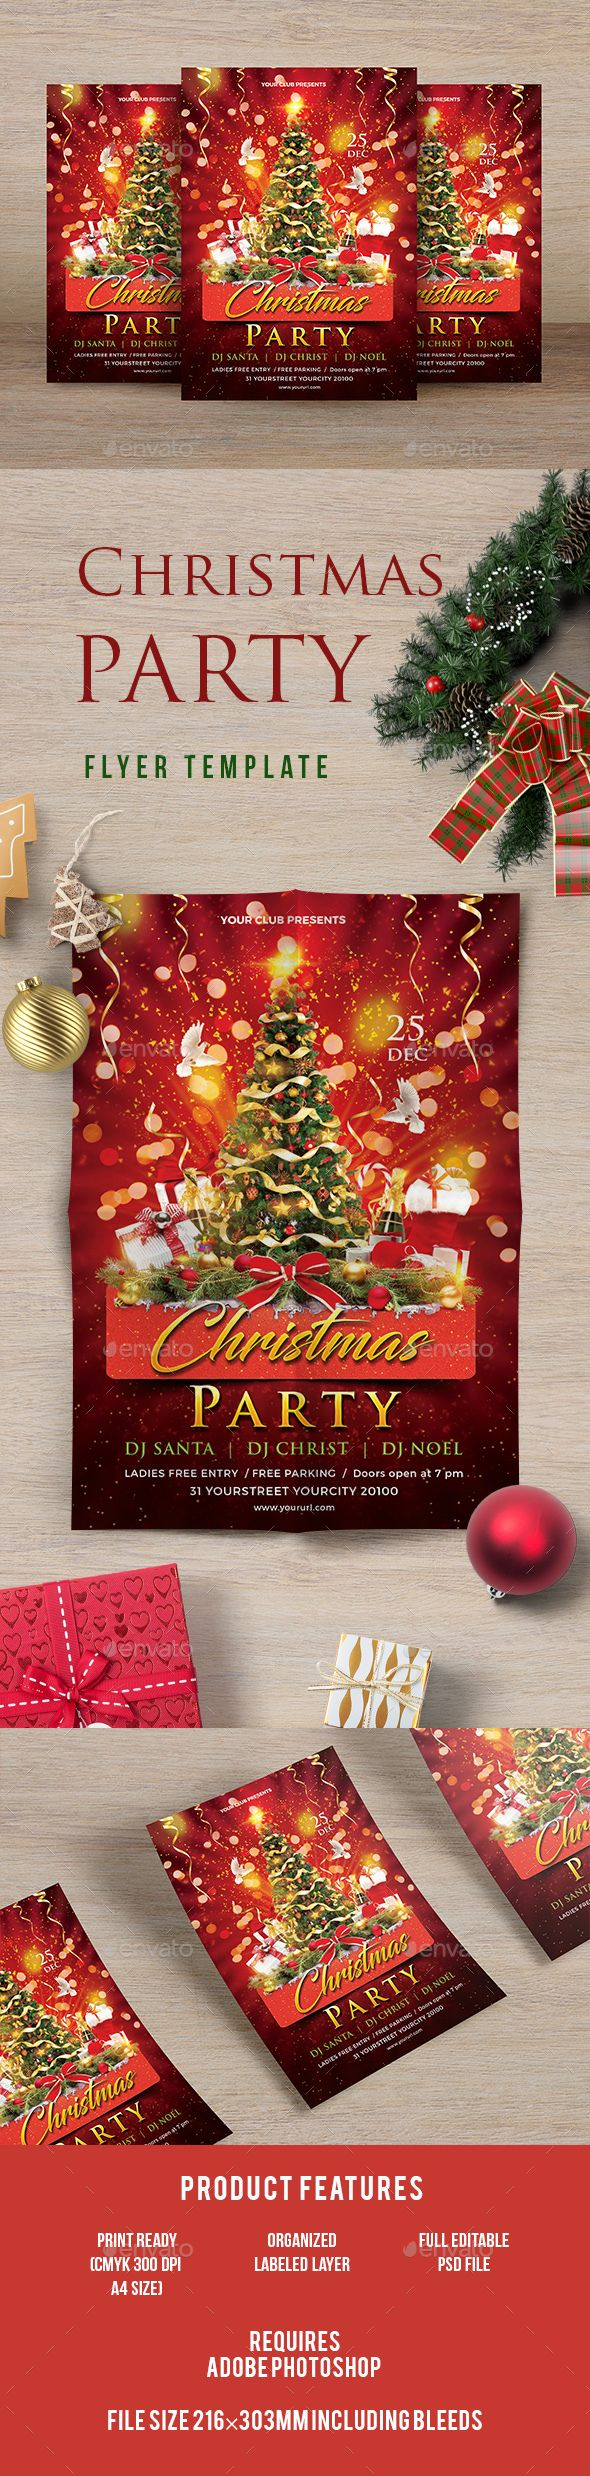 best images about christmas flyer templates christmas party psd xmaschristmas flyer templatesevents